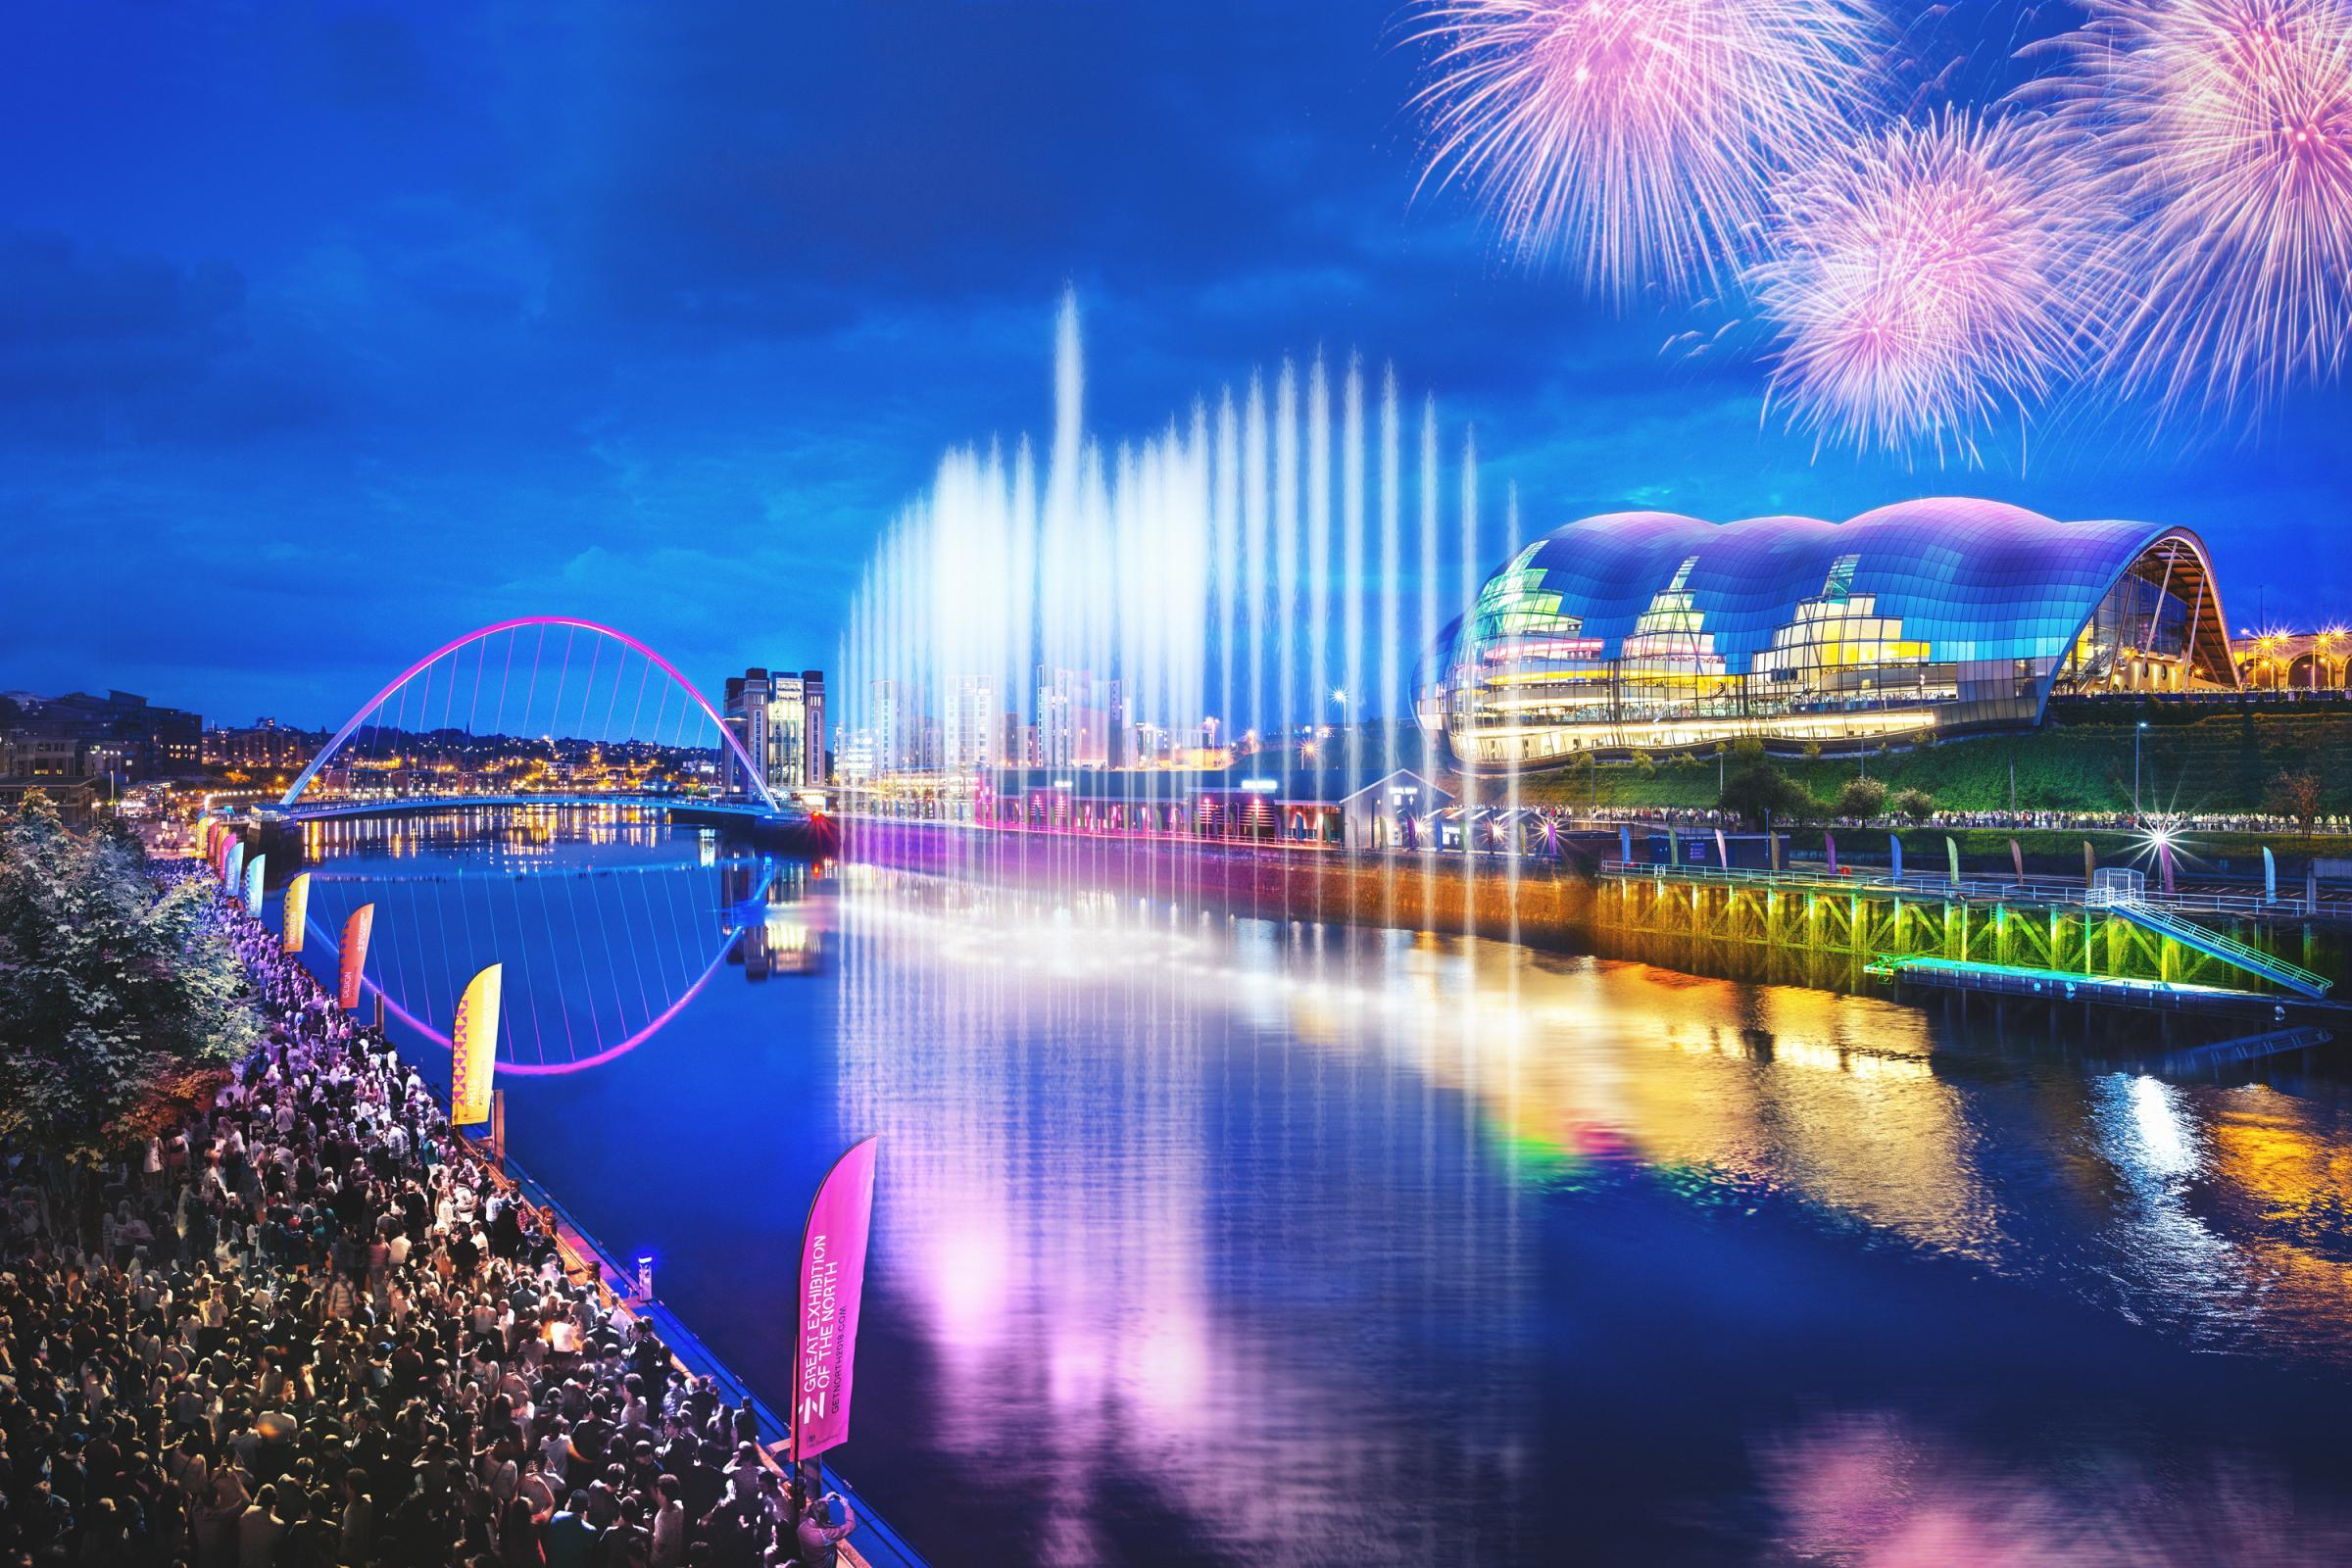 SPECTACULAR: The Great North Water Sculpture that shoots 80m-high spouts of water into the sky will perform every hour of every day for the course of the exhibition